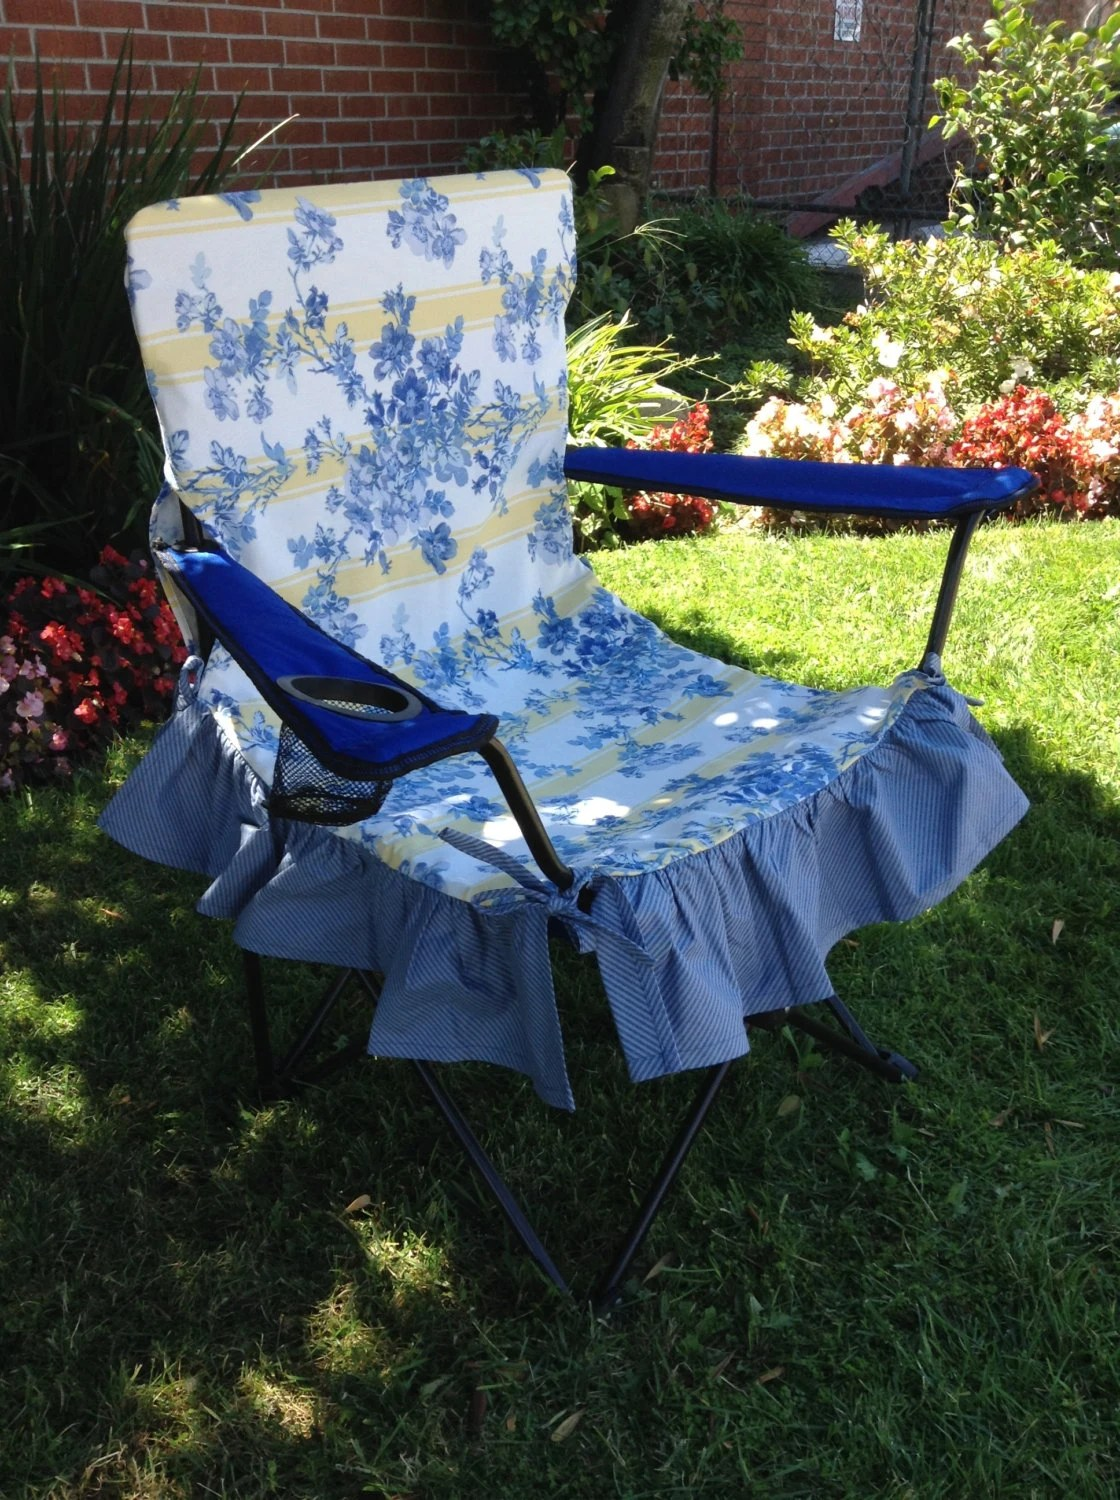 personalized camping chairs body built blue and yellow print glamping chair cover glamorous